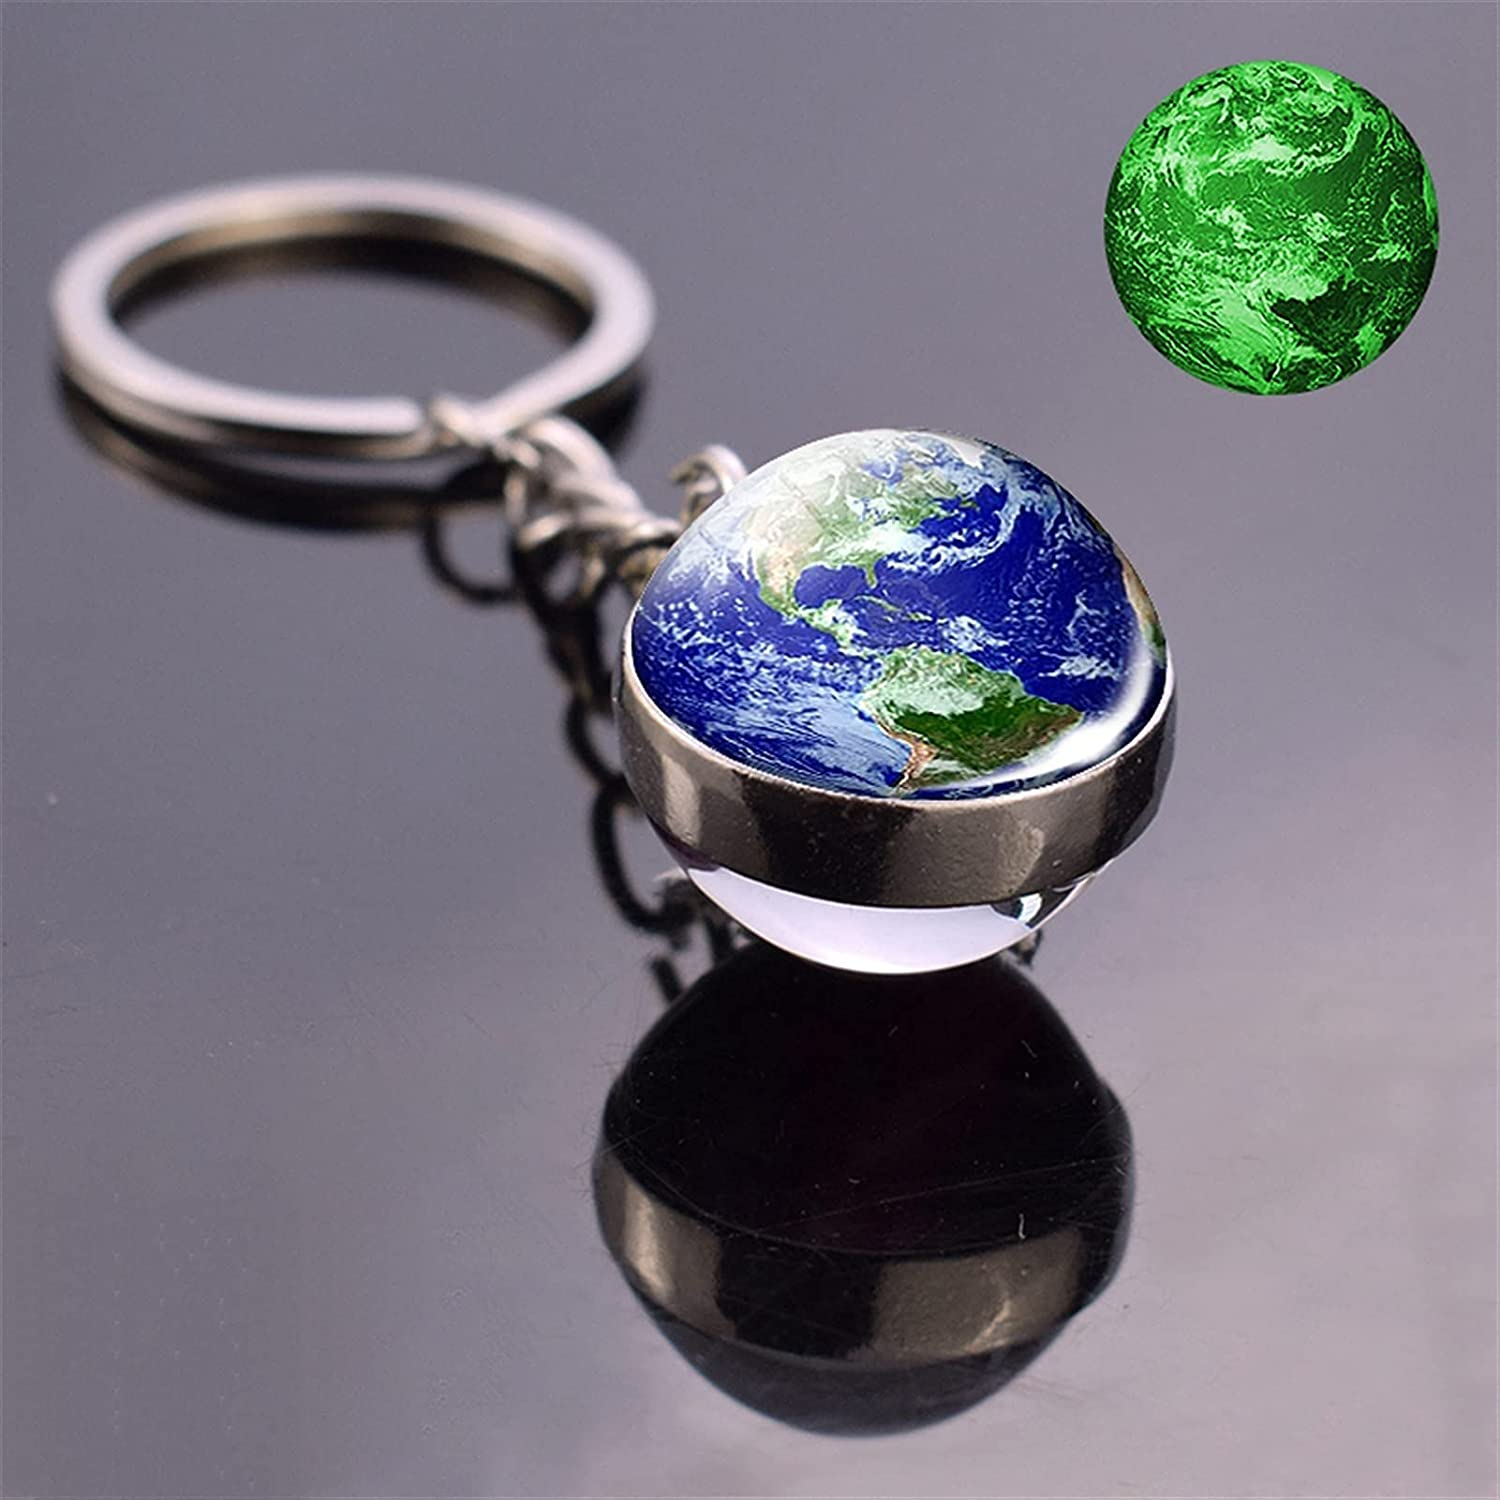 Keychain Glow in The Dark Solar System Planet Keyring Galaxy Nebula Luminous Keychain Moon Earth Sun Double Side Glass Ball Key Chain (Color : 1, Size : D)